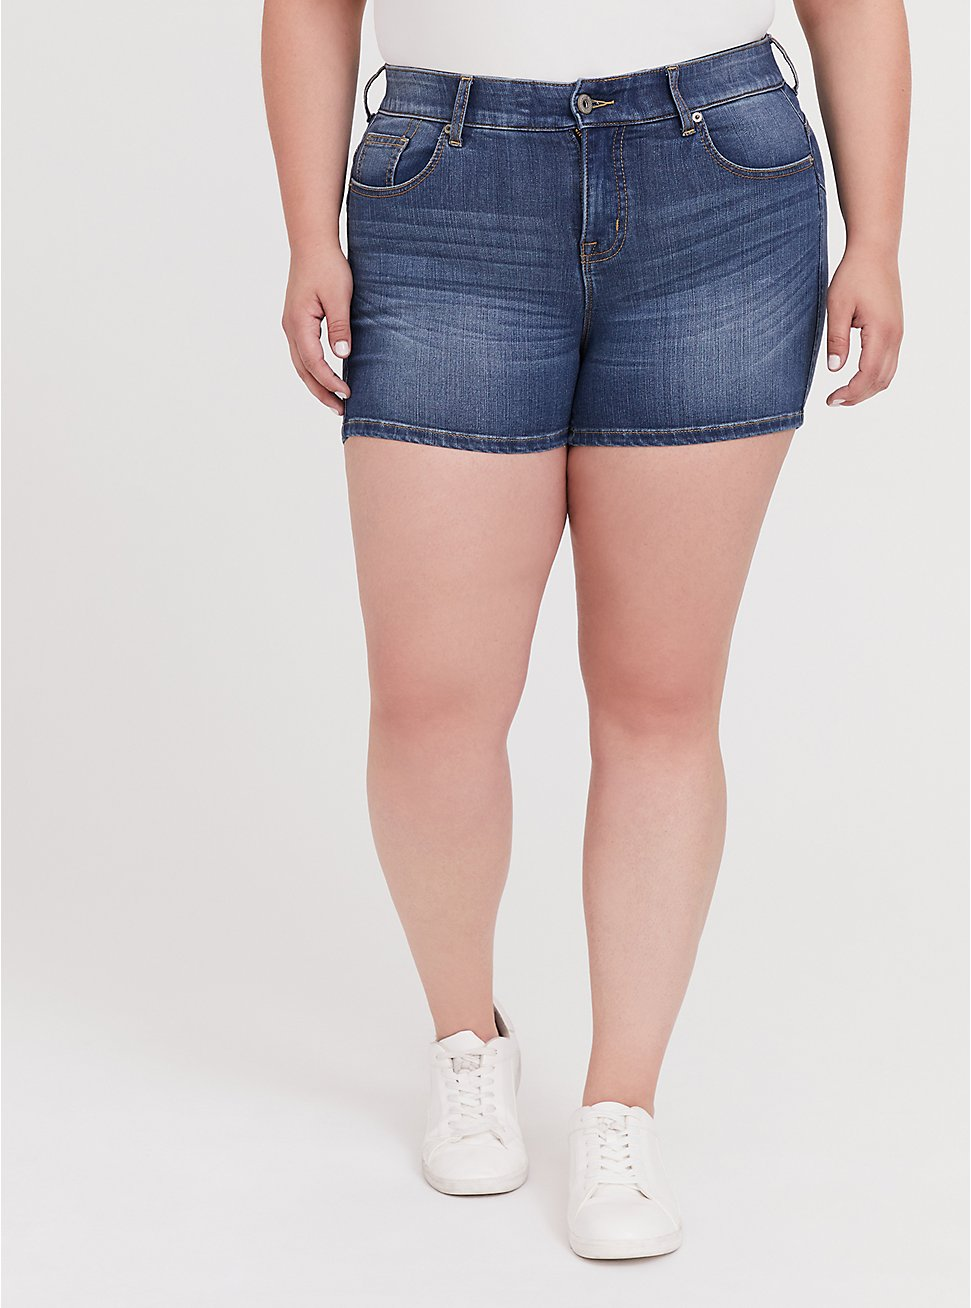 Bombshell Skinny Short Short - Premium Stretch Medium Wash, , hi-res